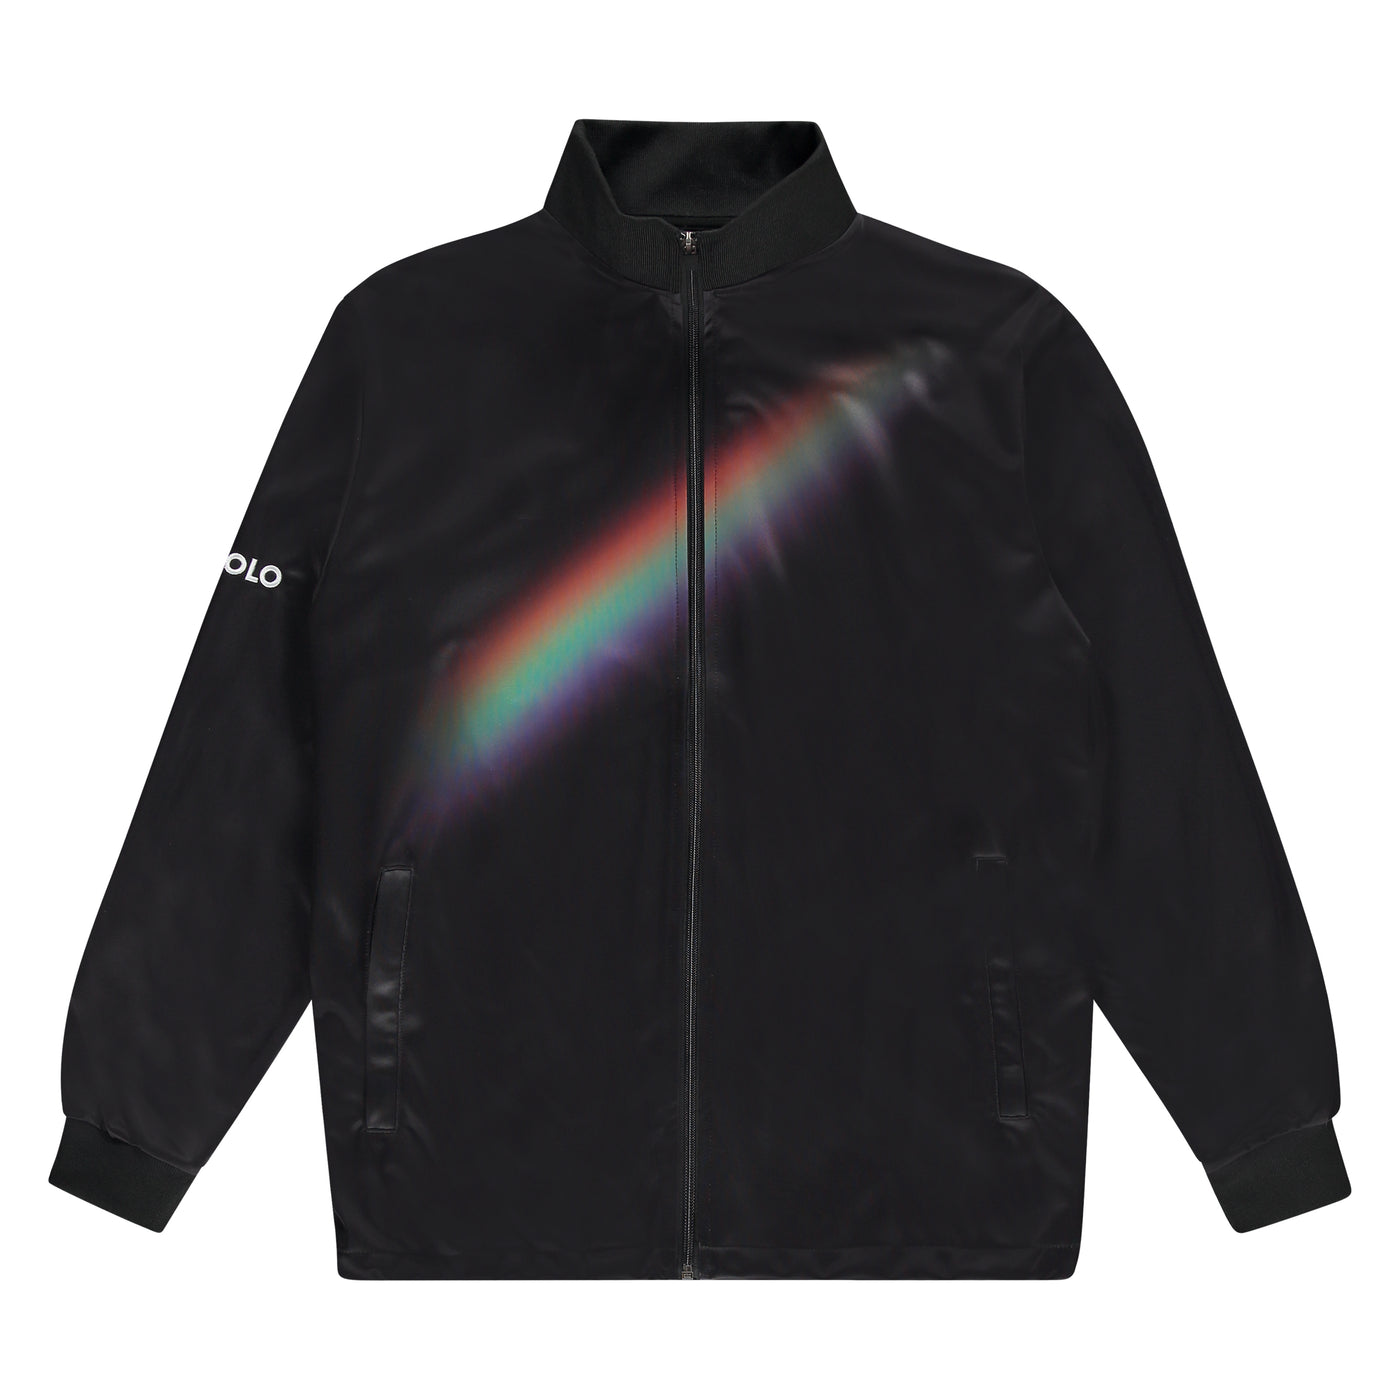 San Holo light jacket